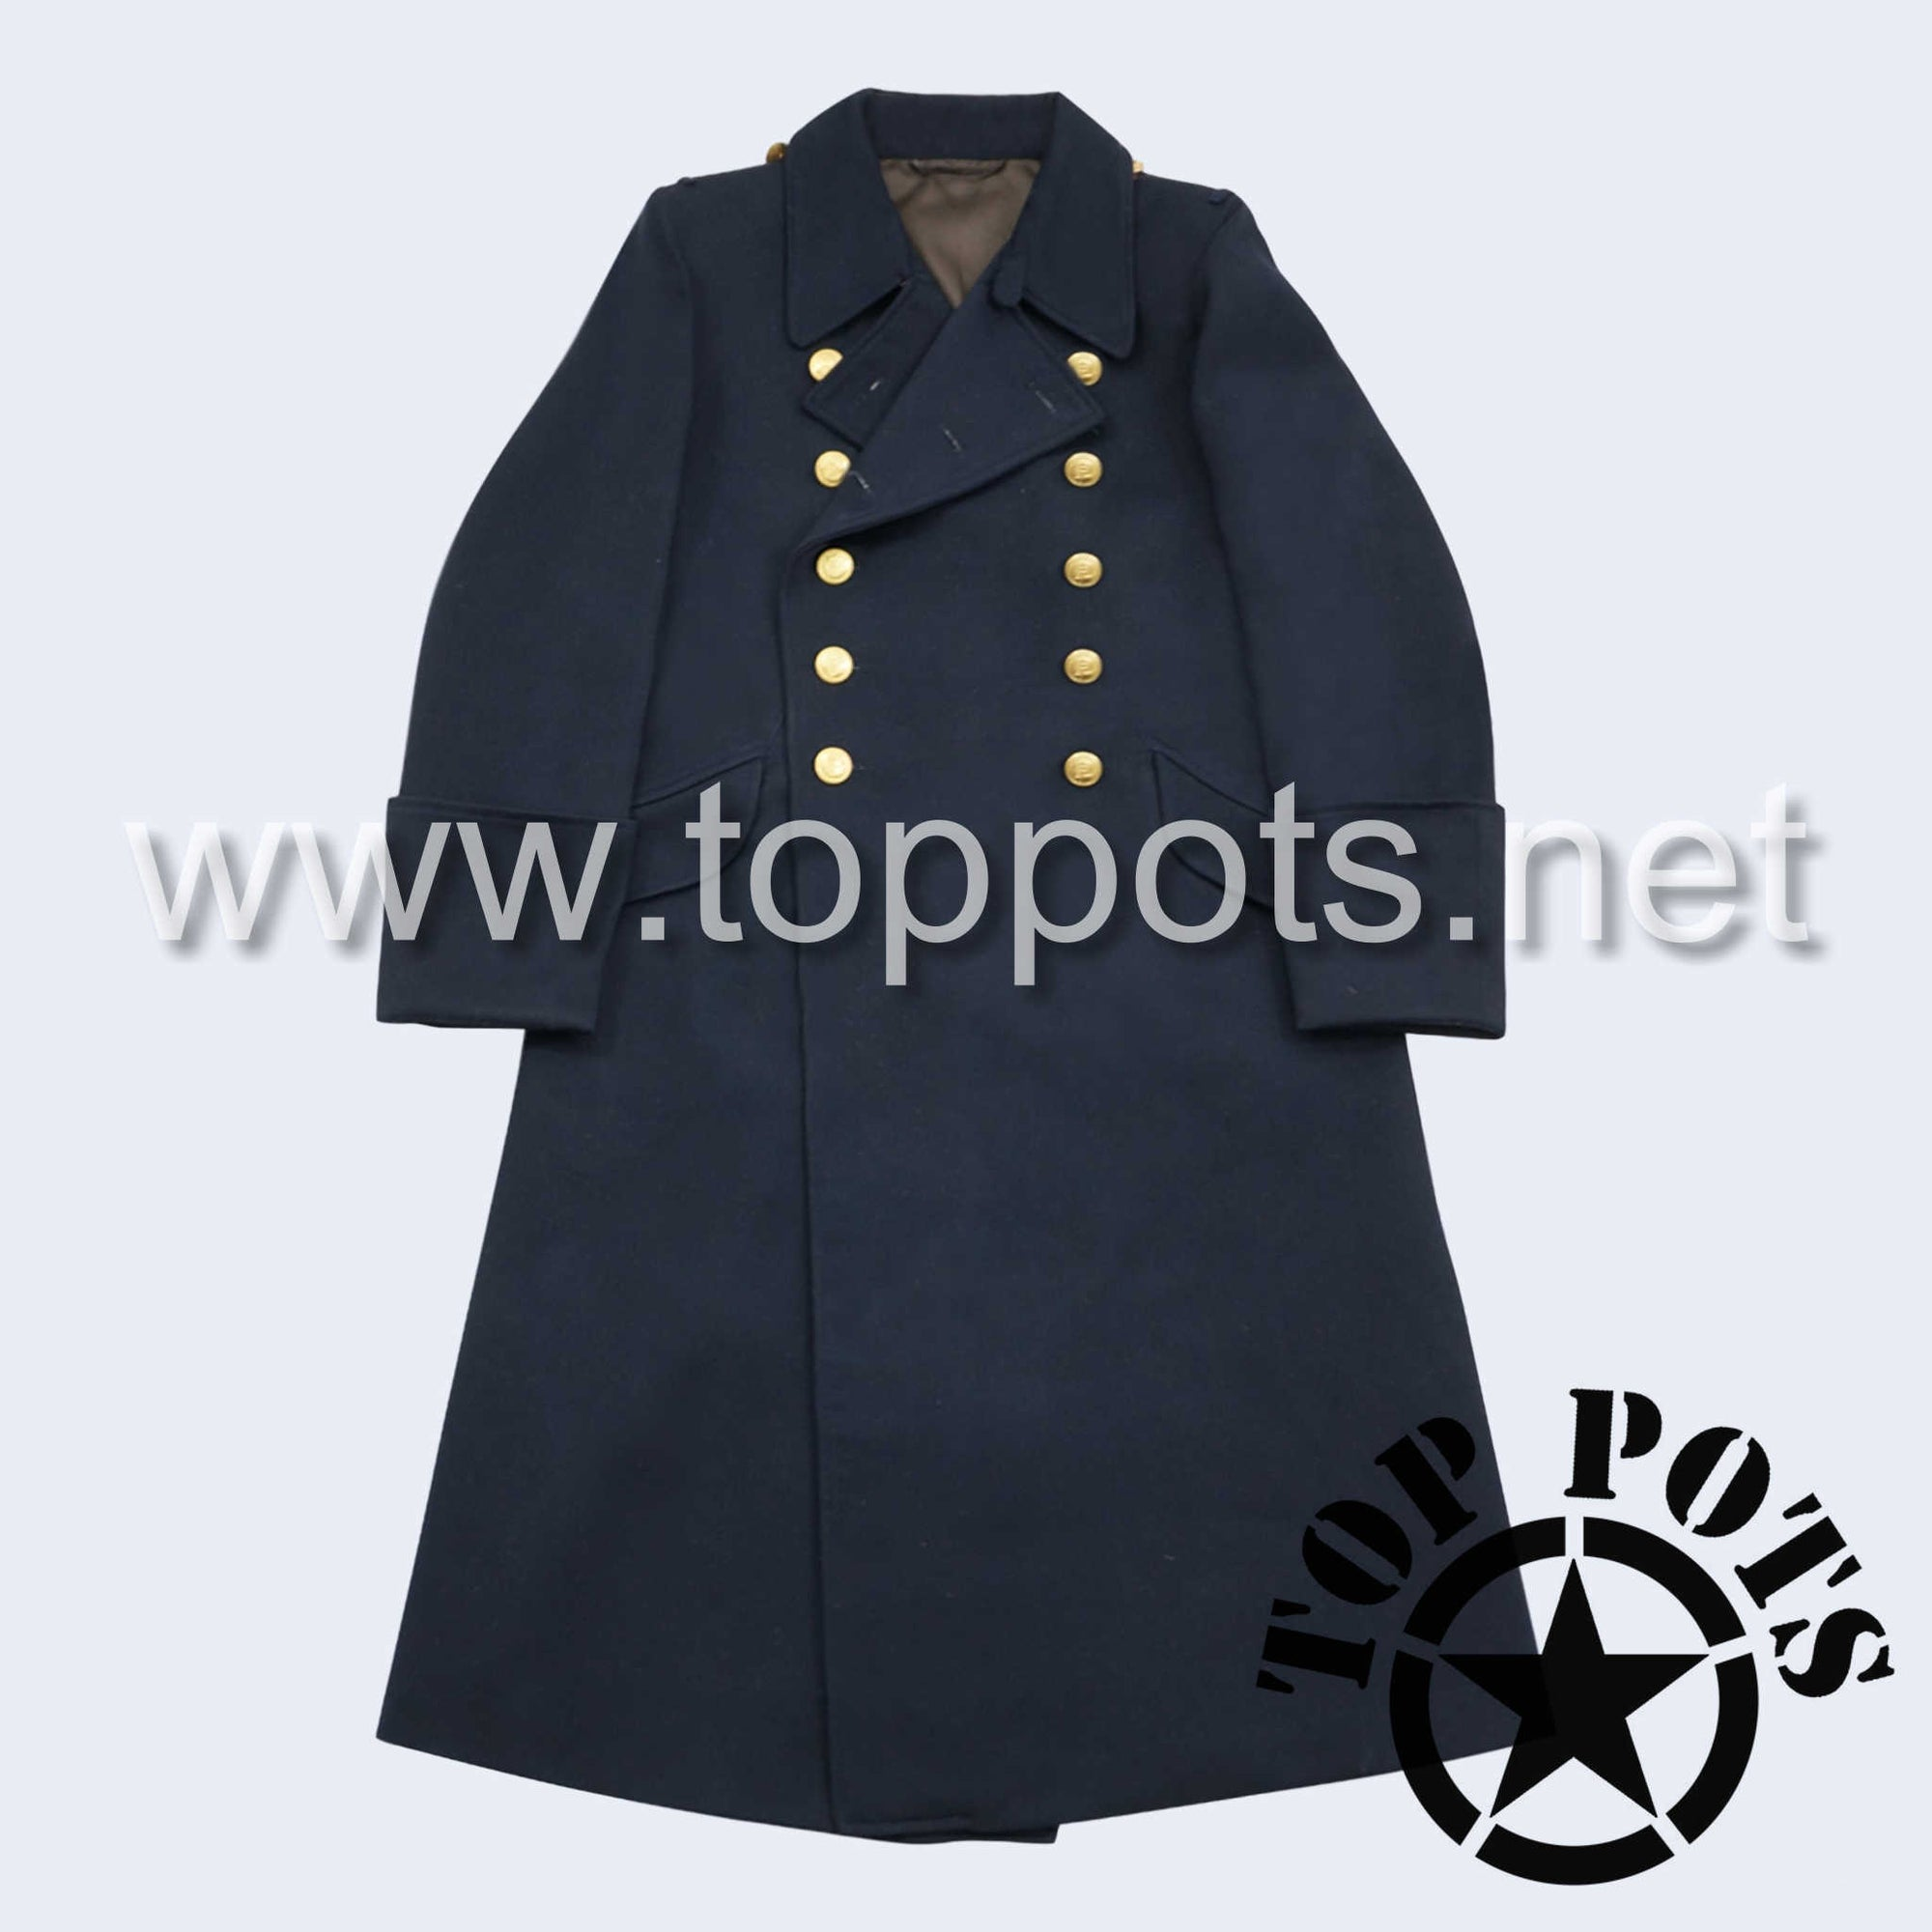 WWII German Navy Kriegsmarine Uniform Overcoat Greatcoat Winter Jacket Navy Blue Gabardine - Officer